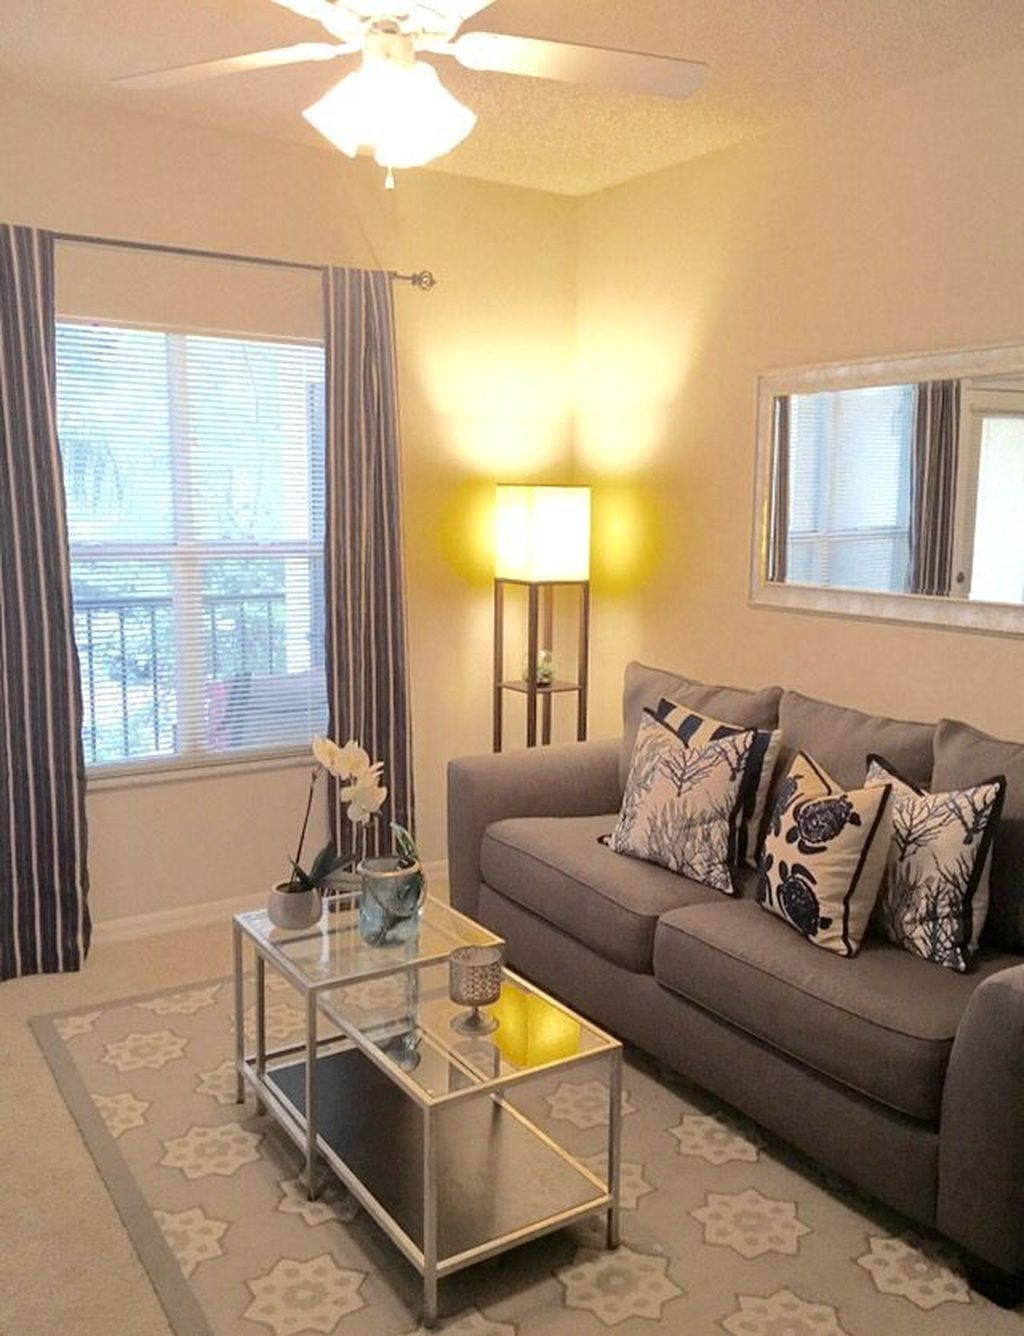 Find the best living room designs ideas to match your style browse through images of design  ideasto create dream also inspiring new apartment decorating on  budget rh pinterest